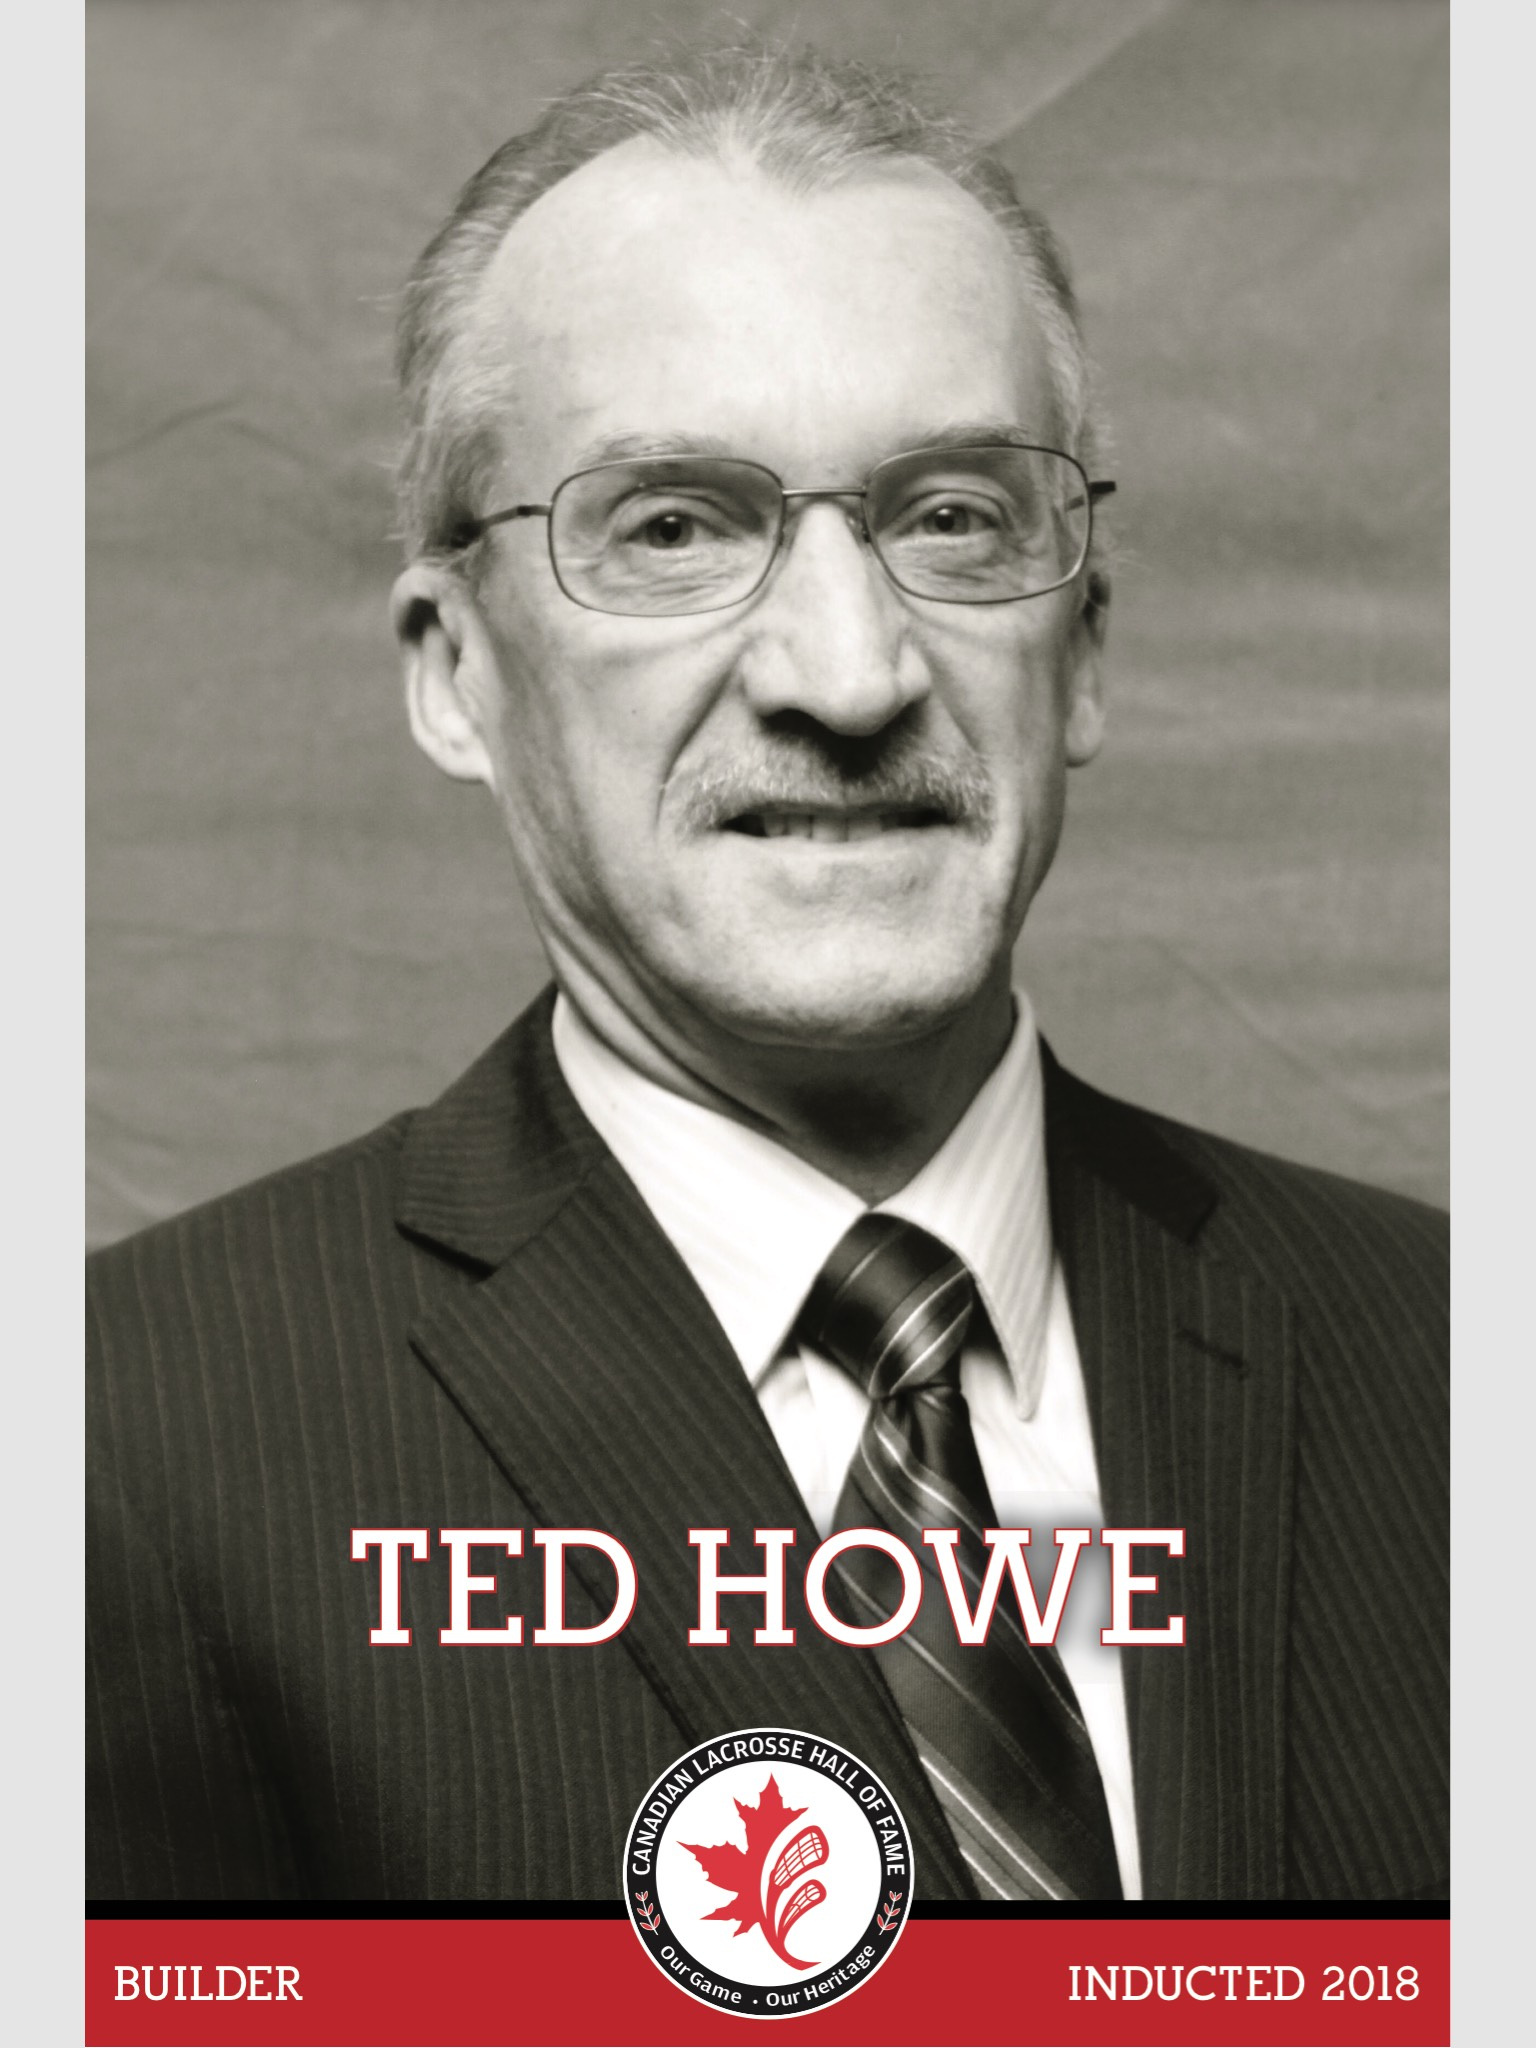 Ted Howe